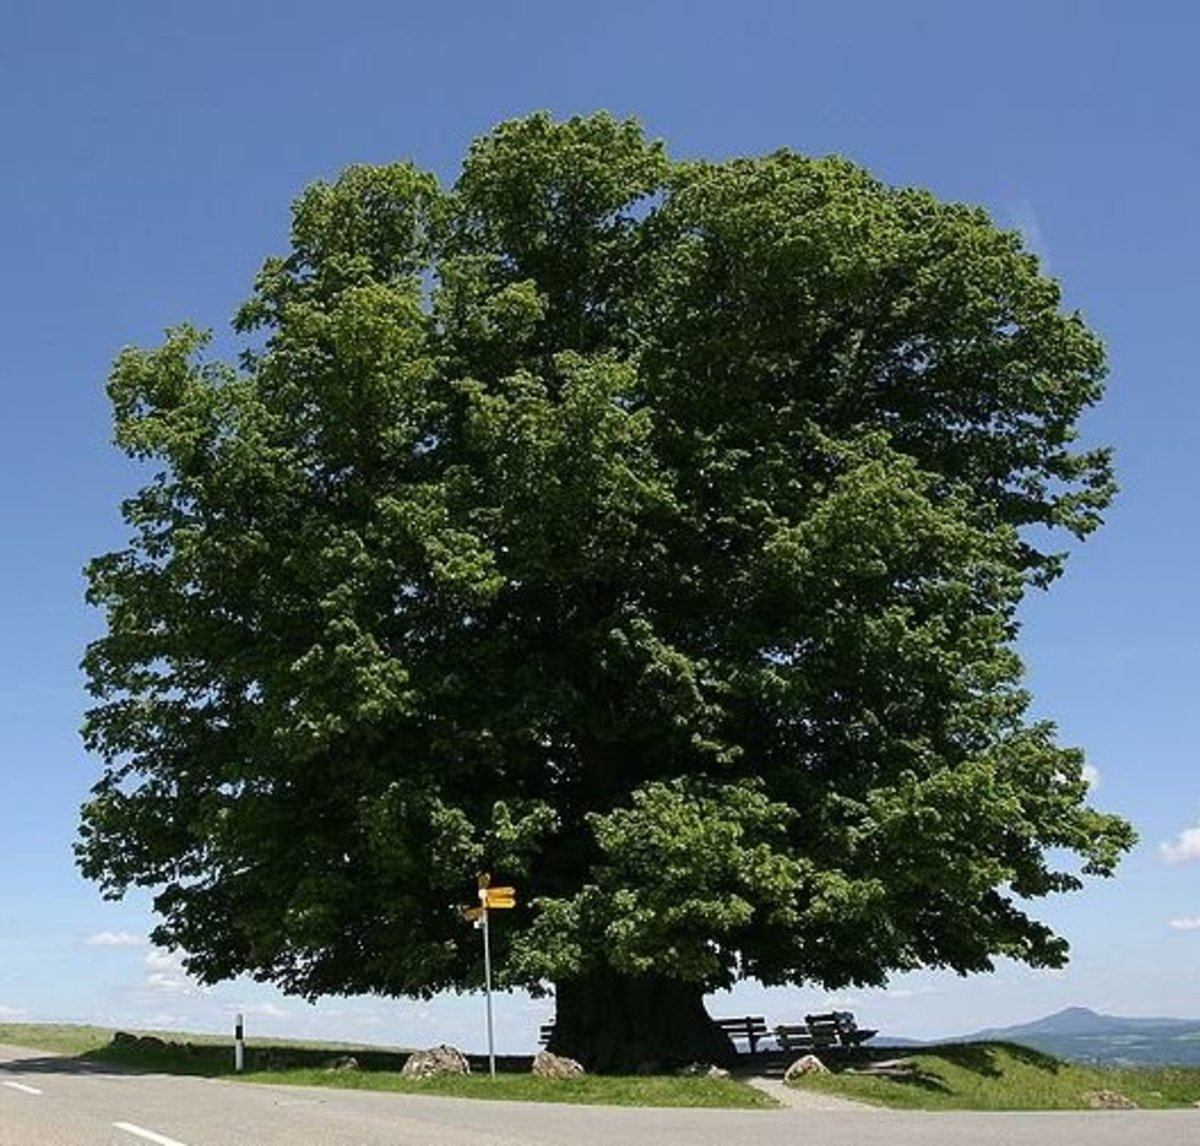 700 Year Old Lime Linden Tree in Brugg, Switzerland